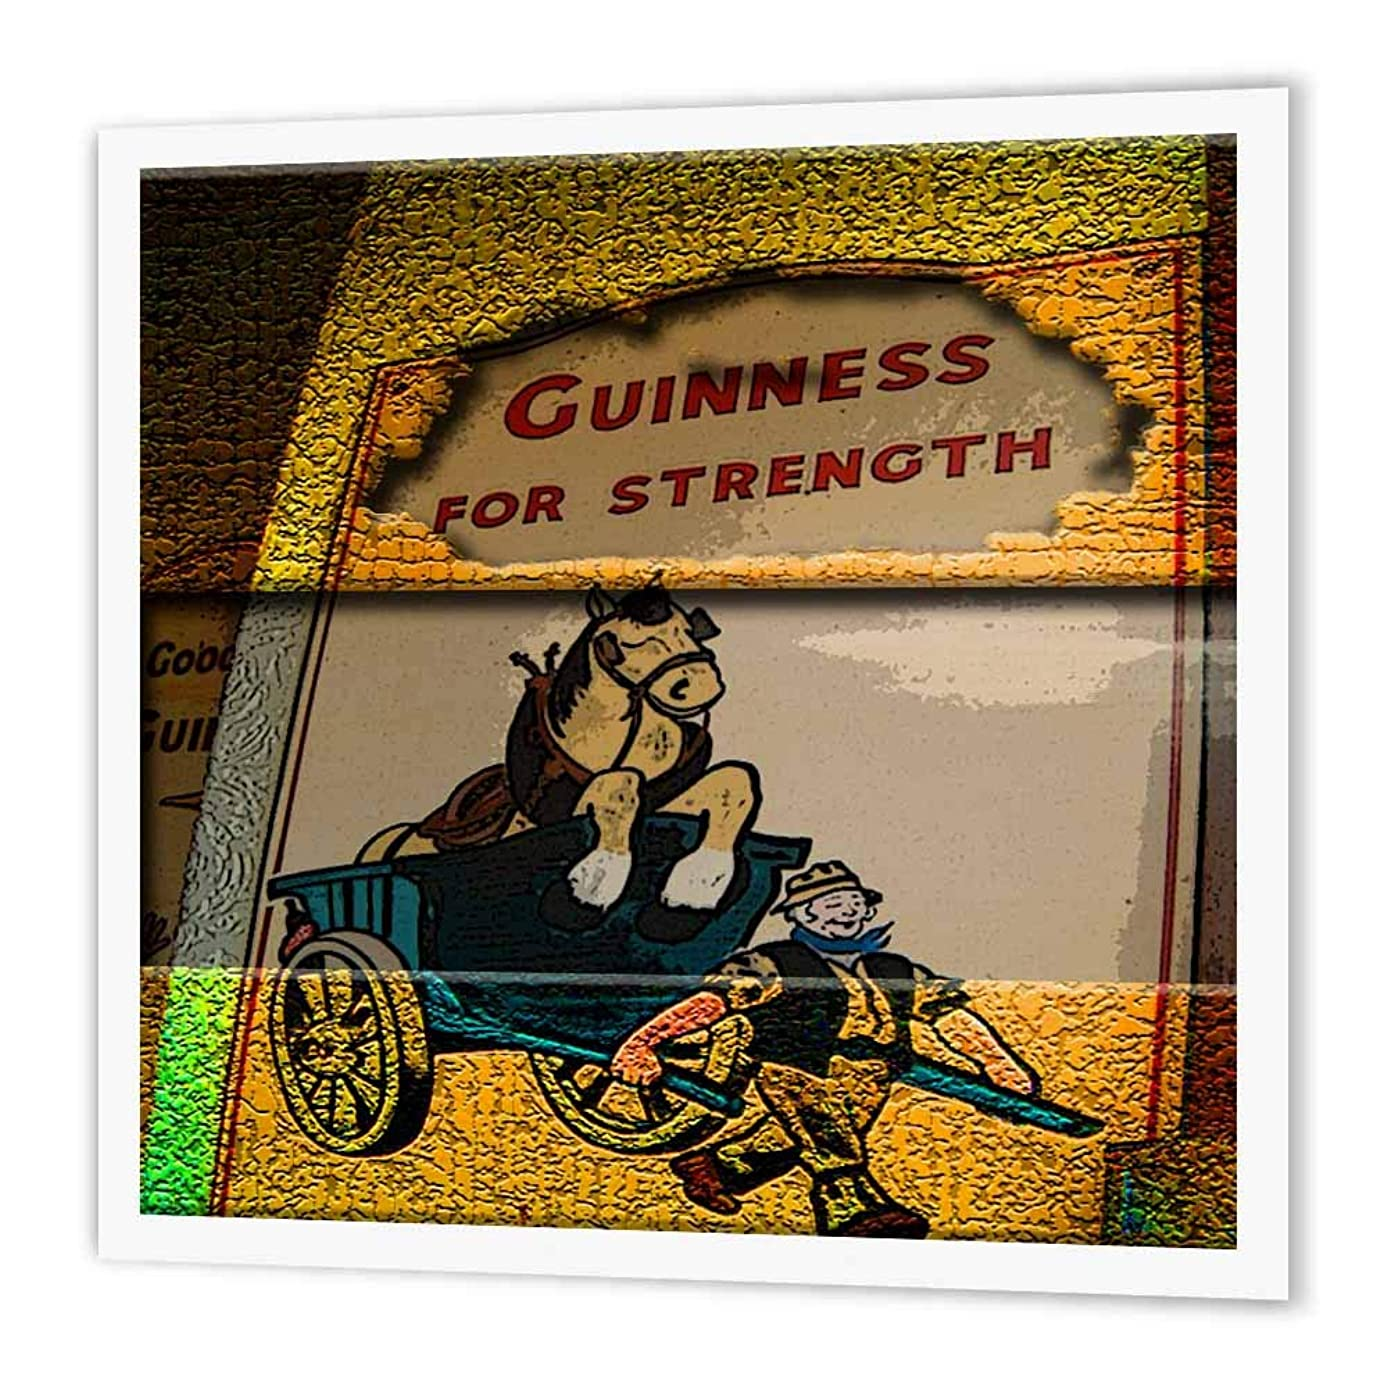 3dRose ht_44628_3 Poster of Guinness for Strength Sign in Ireland Posturized, Given Depth-Iron on Heat Transfer Paper for White Material, 10 by 10-Inch